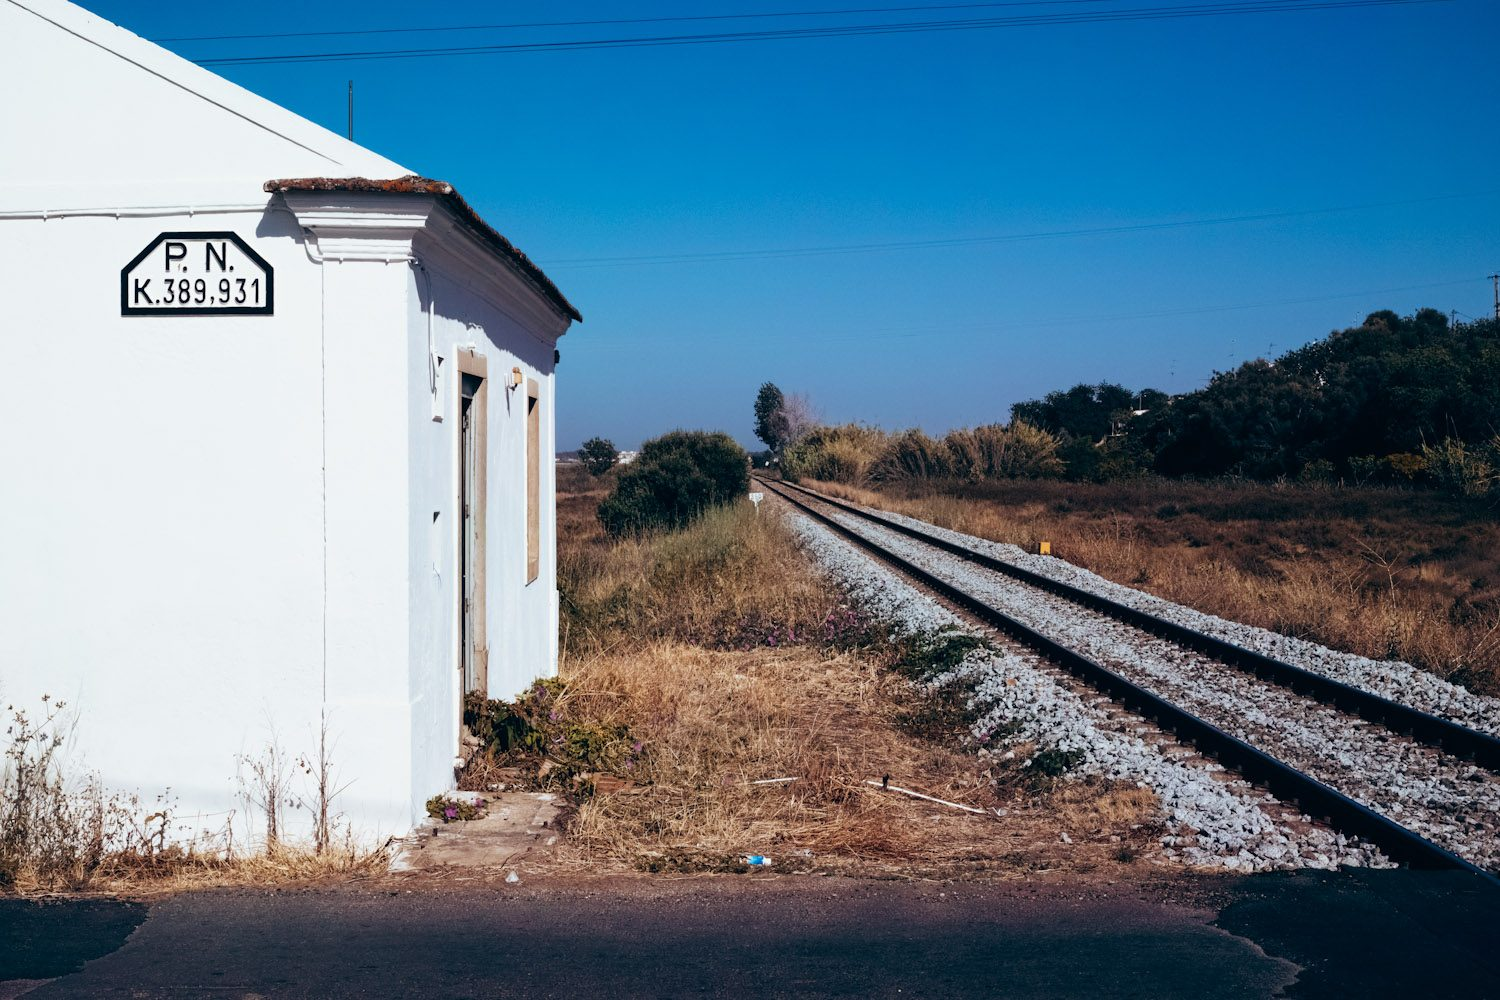 algarve_trainstations_portugal_thevoyageur011